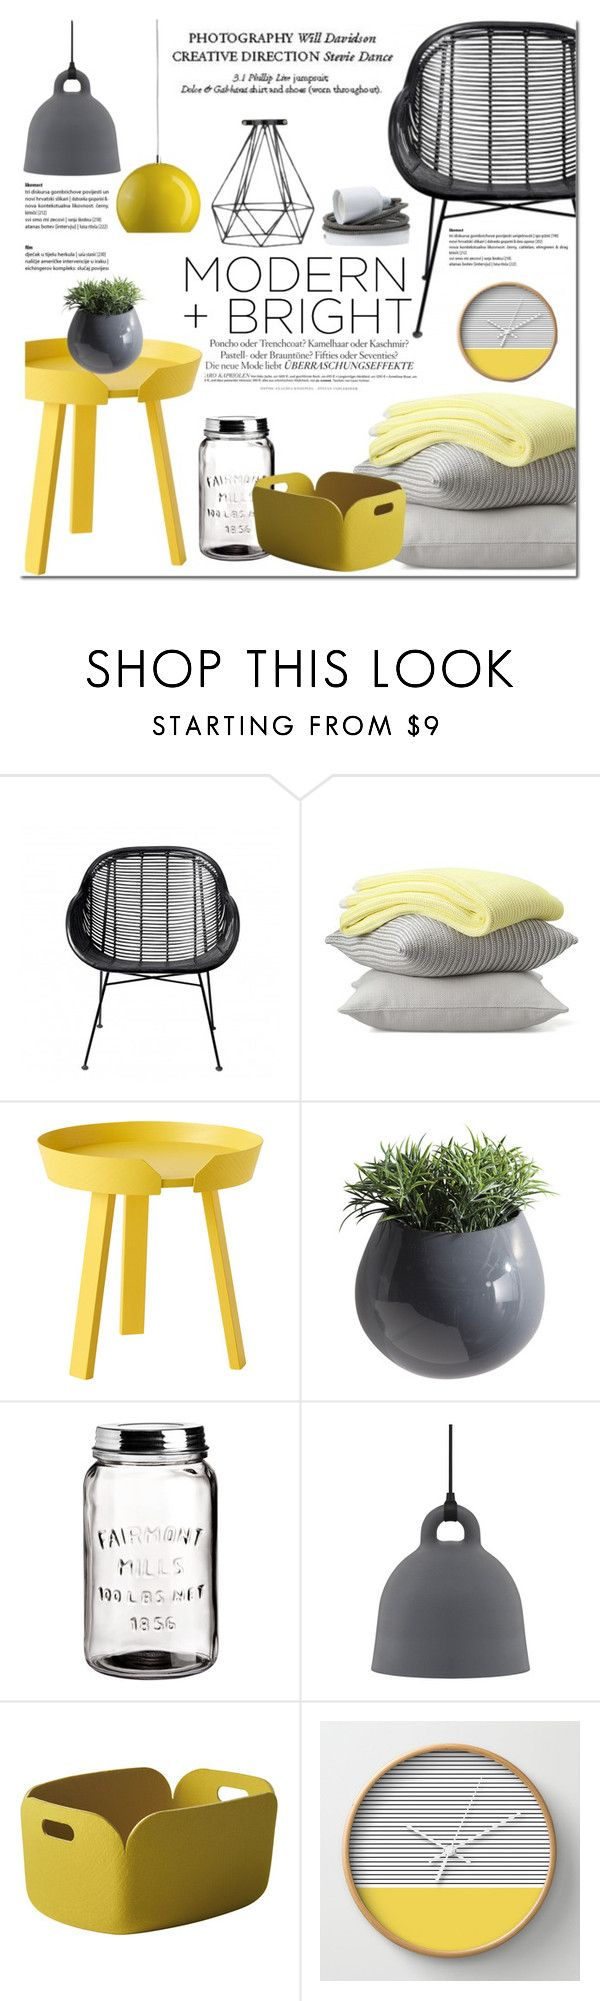 """""""Modern and Bright"""" by dian-lado on Polyvore featuring interior, interiors, interior design, home, home decor, interior decorating, Bloomingville, Melissa, Muuto and Dot & Bo"""